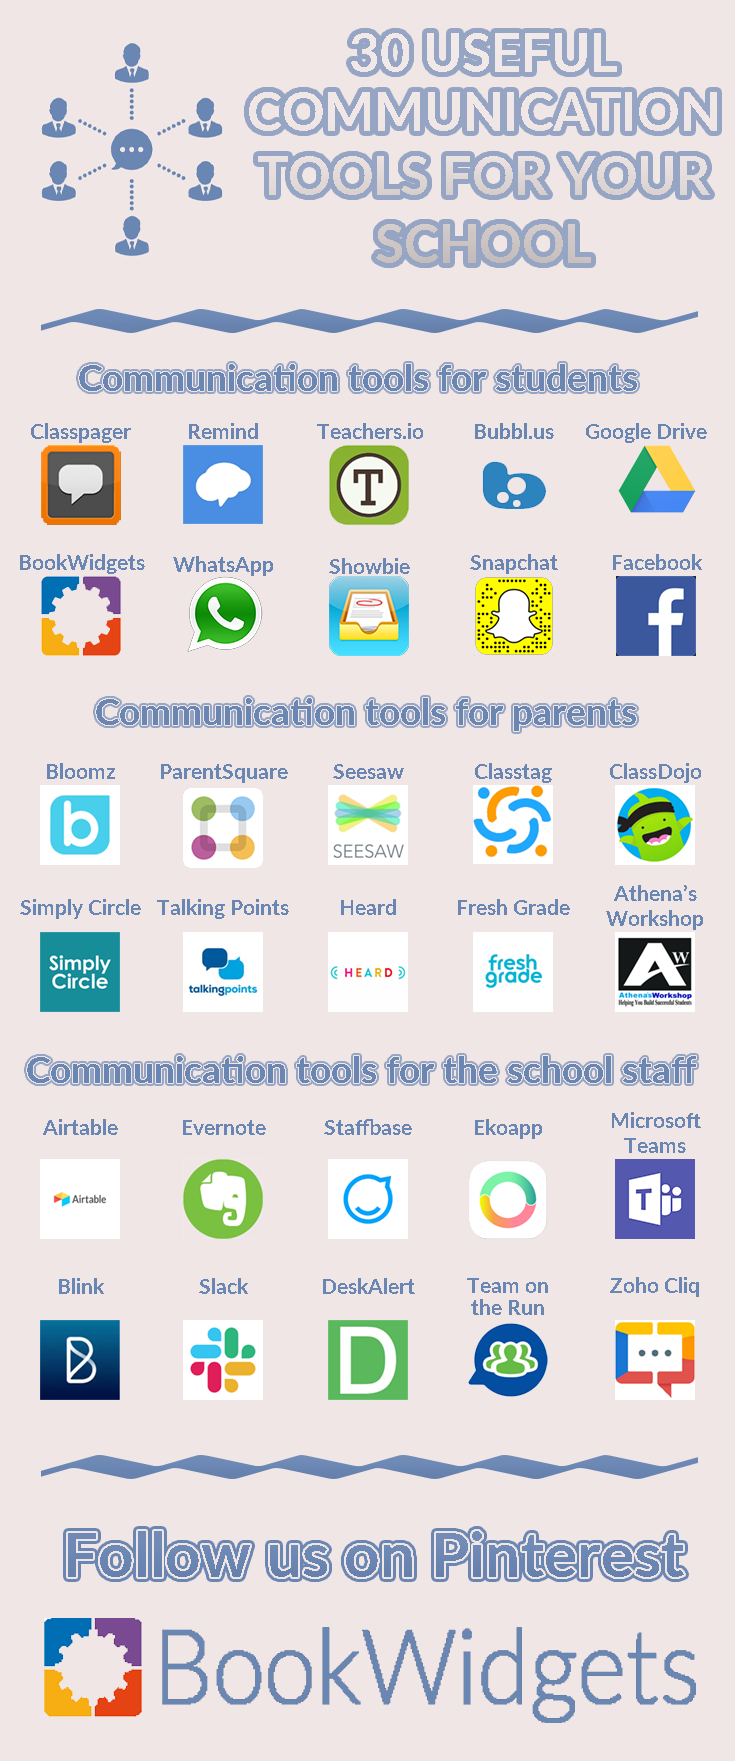 30 useful communication tools for your school